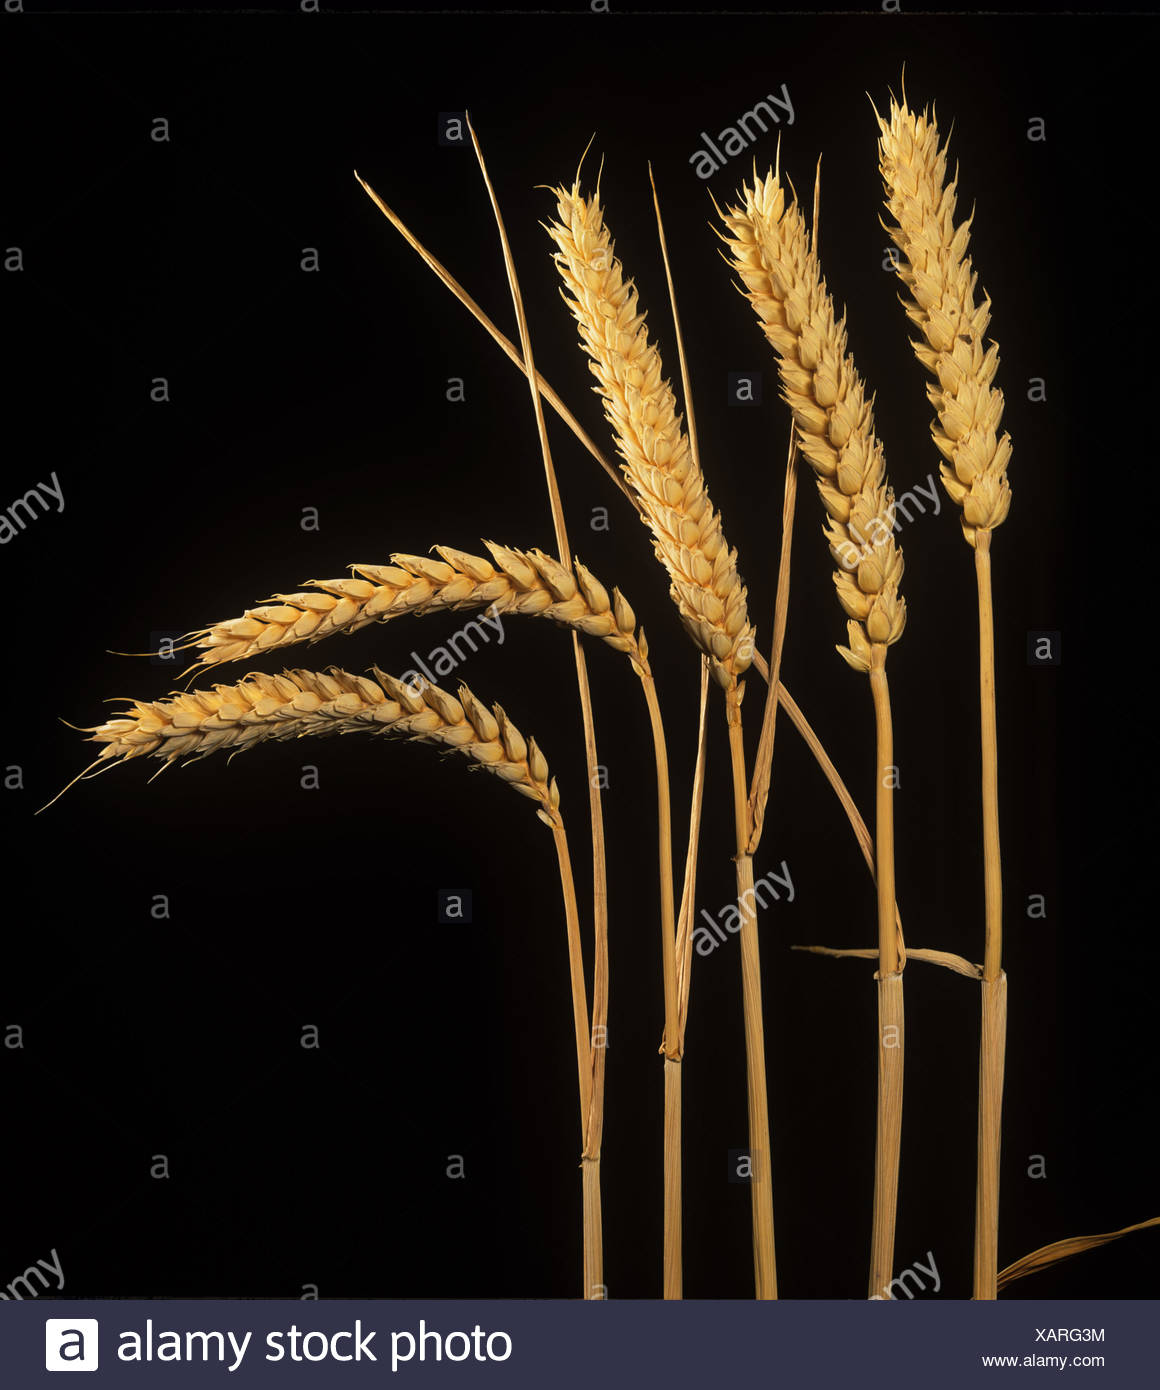 Ripe ears of winter wheat against a black background - Stock Image